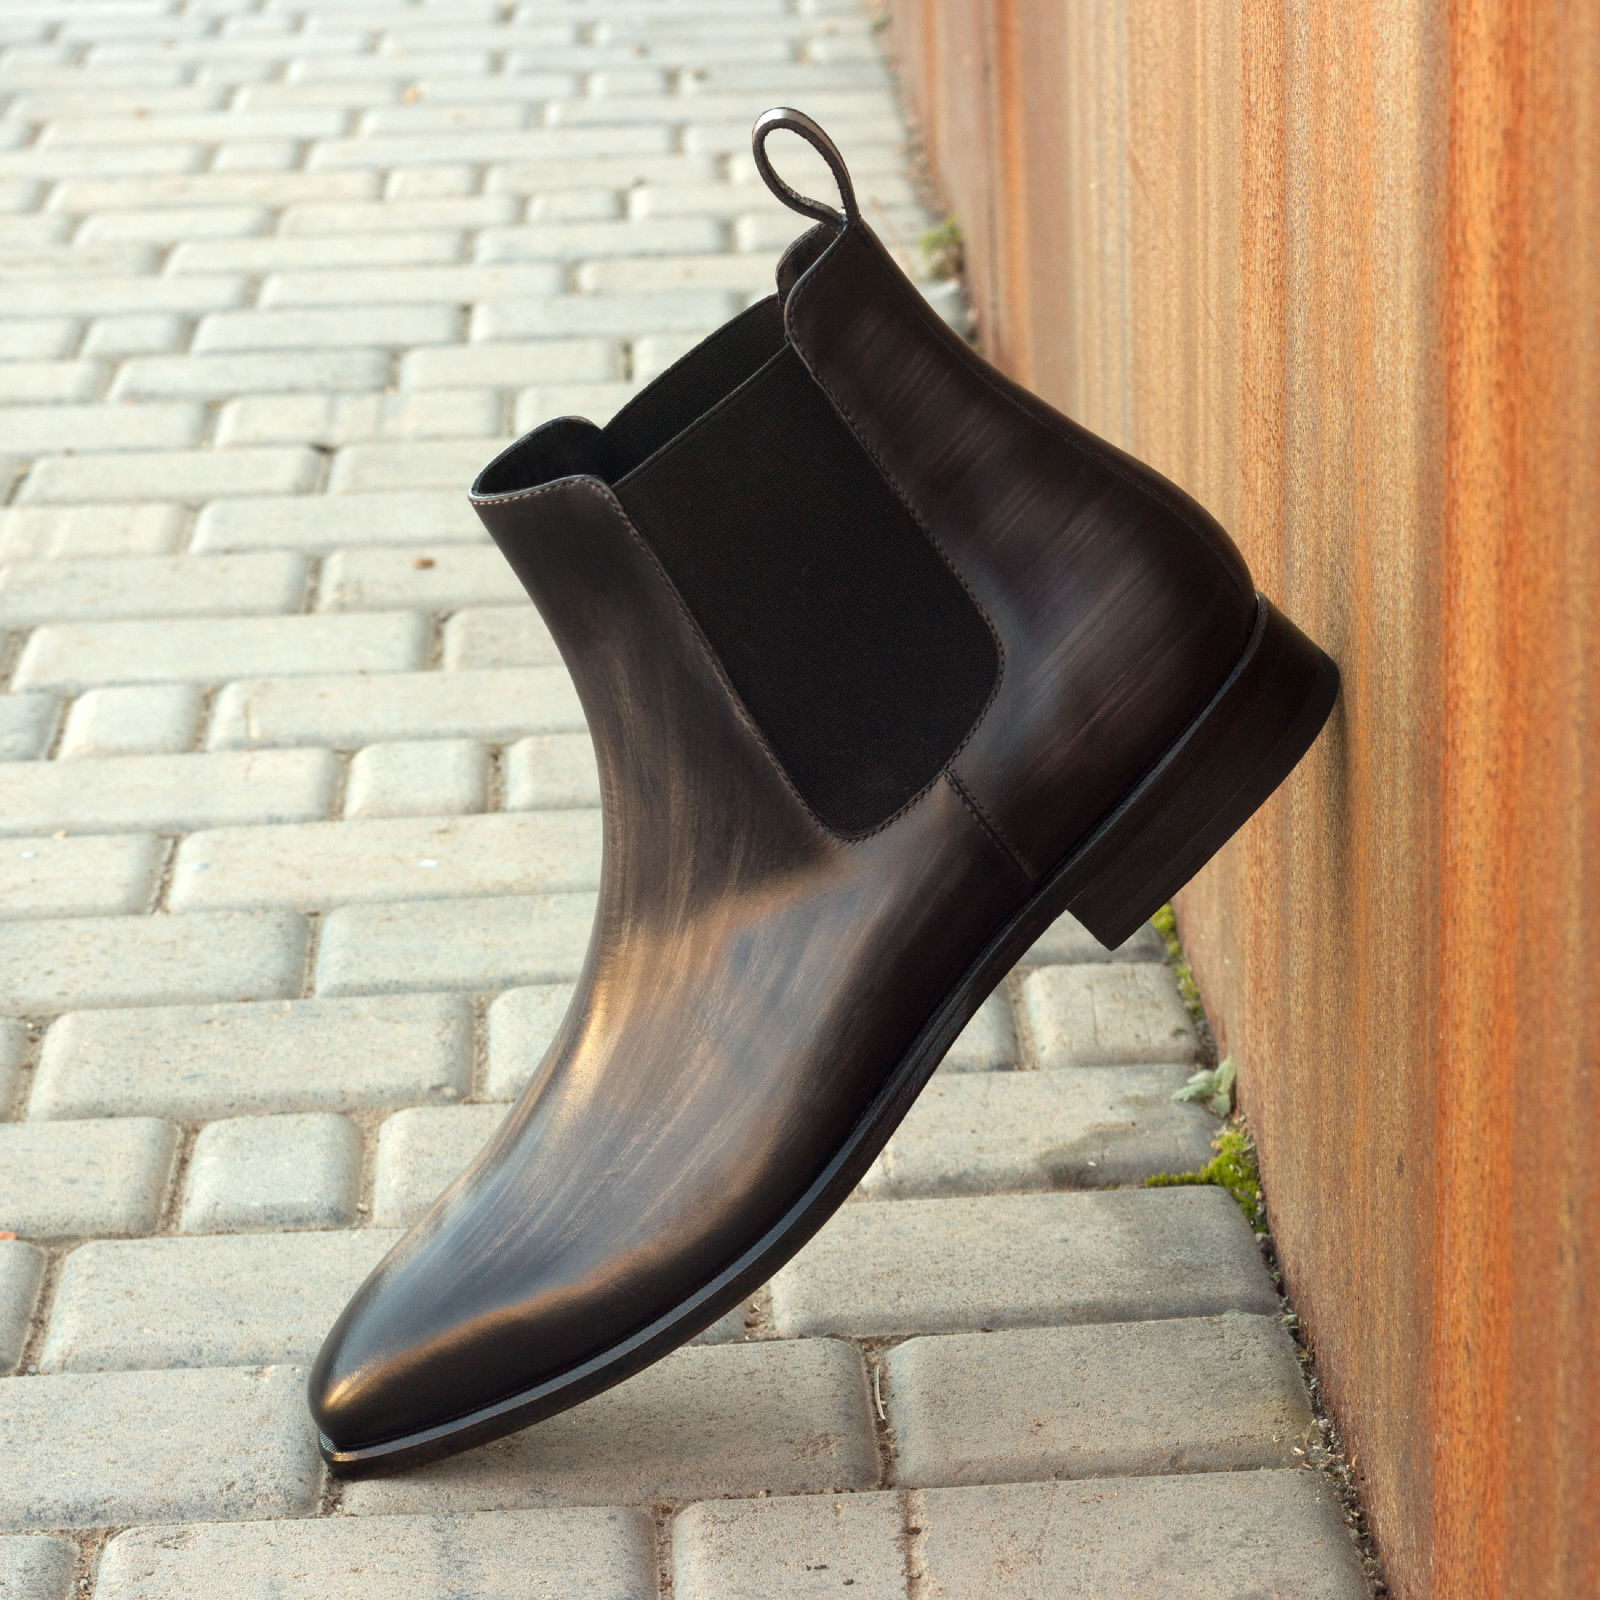 Chelsea boot by Judah S.